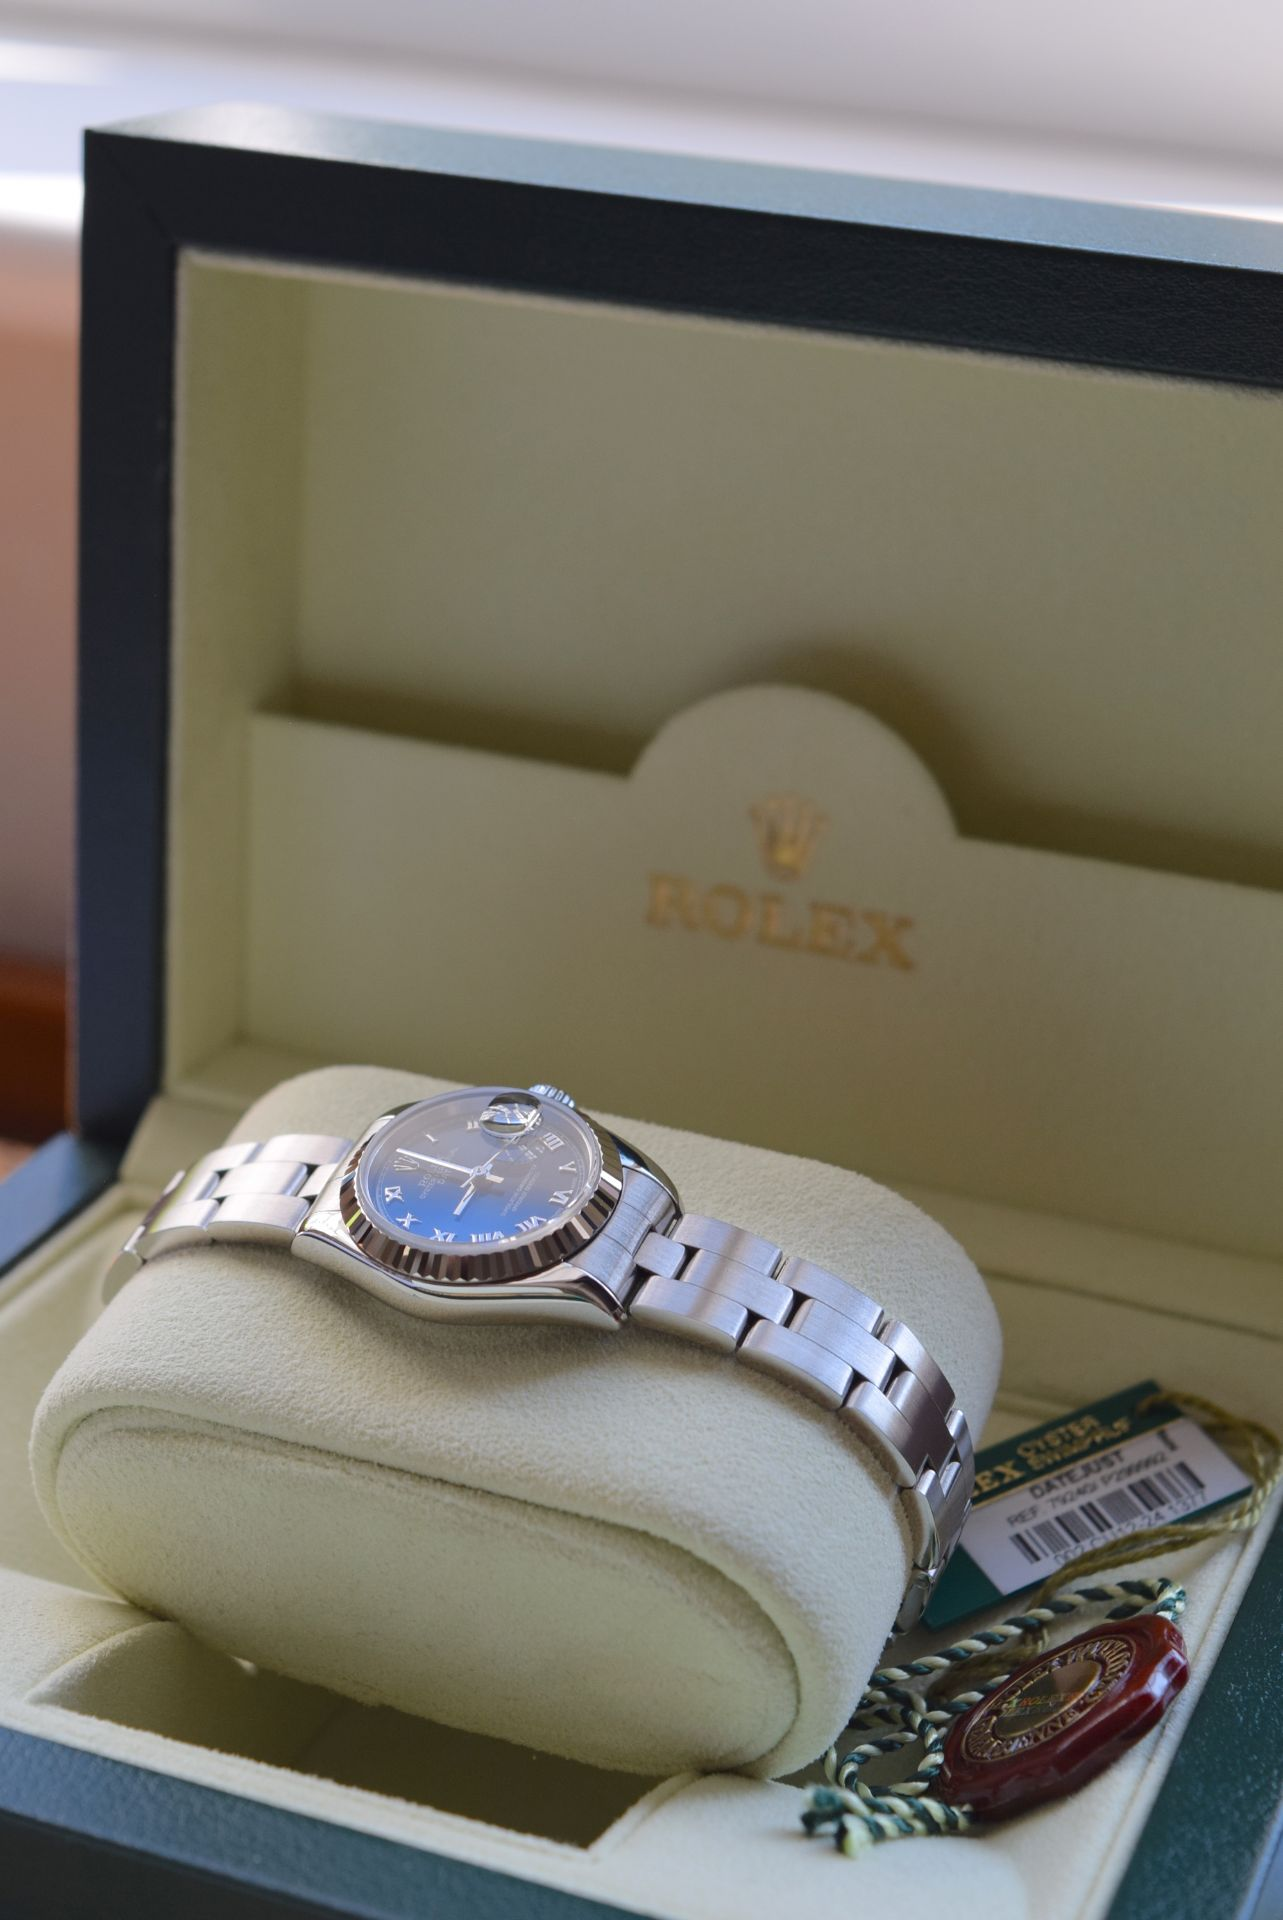 *FULL SET* ROLEX DATEJUST (LADIES) STEEL & 18CT WHITE GOLD - NAVY BLUE 'ROMAN NUMERAL' DIAL - Image 4 of 19